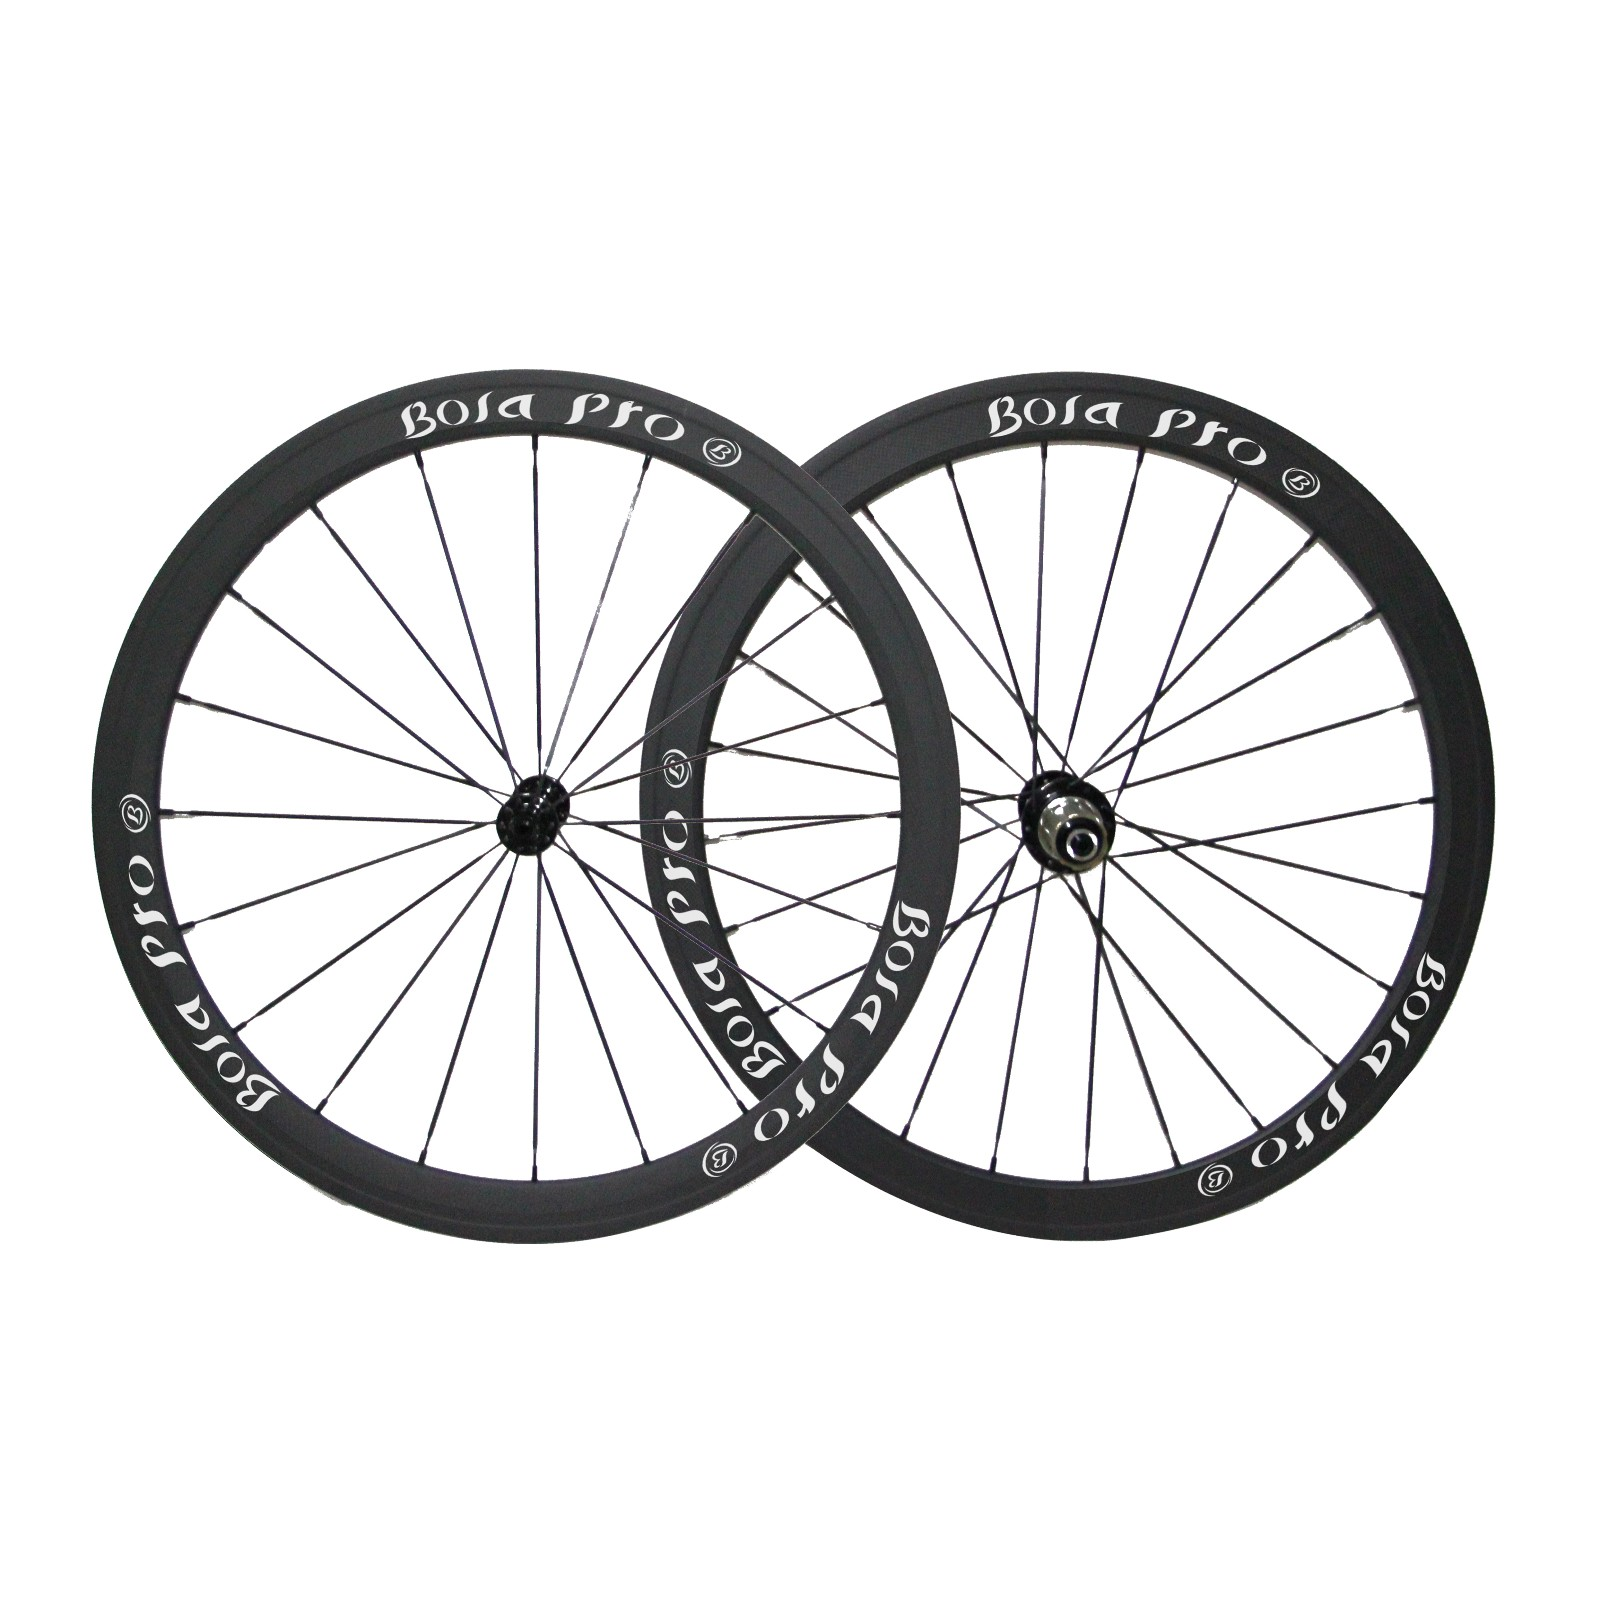 700C 38mm carbon wheelset with carbon straight pull hub